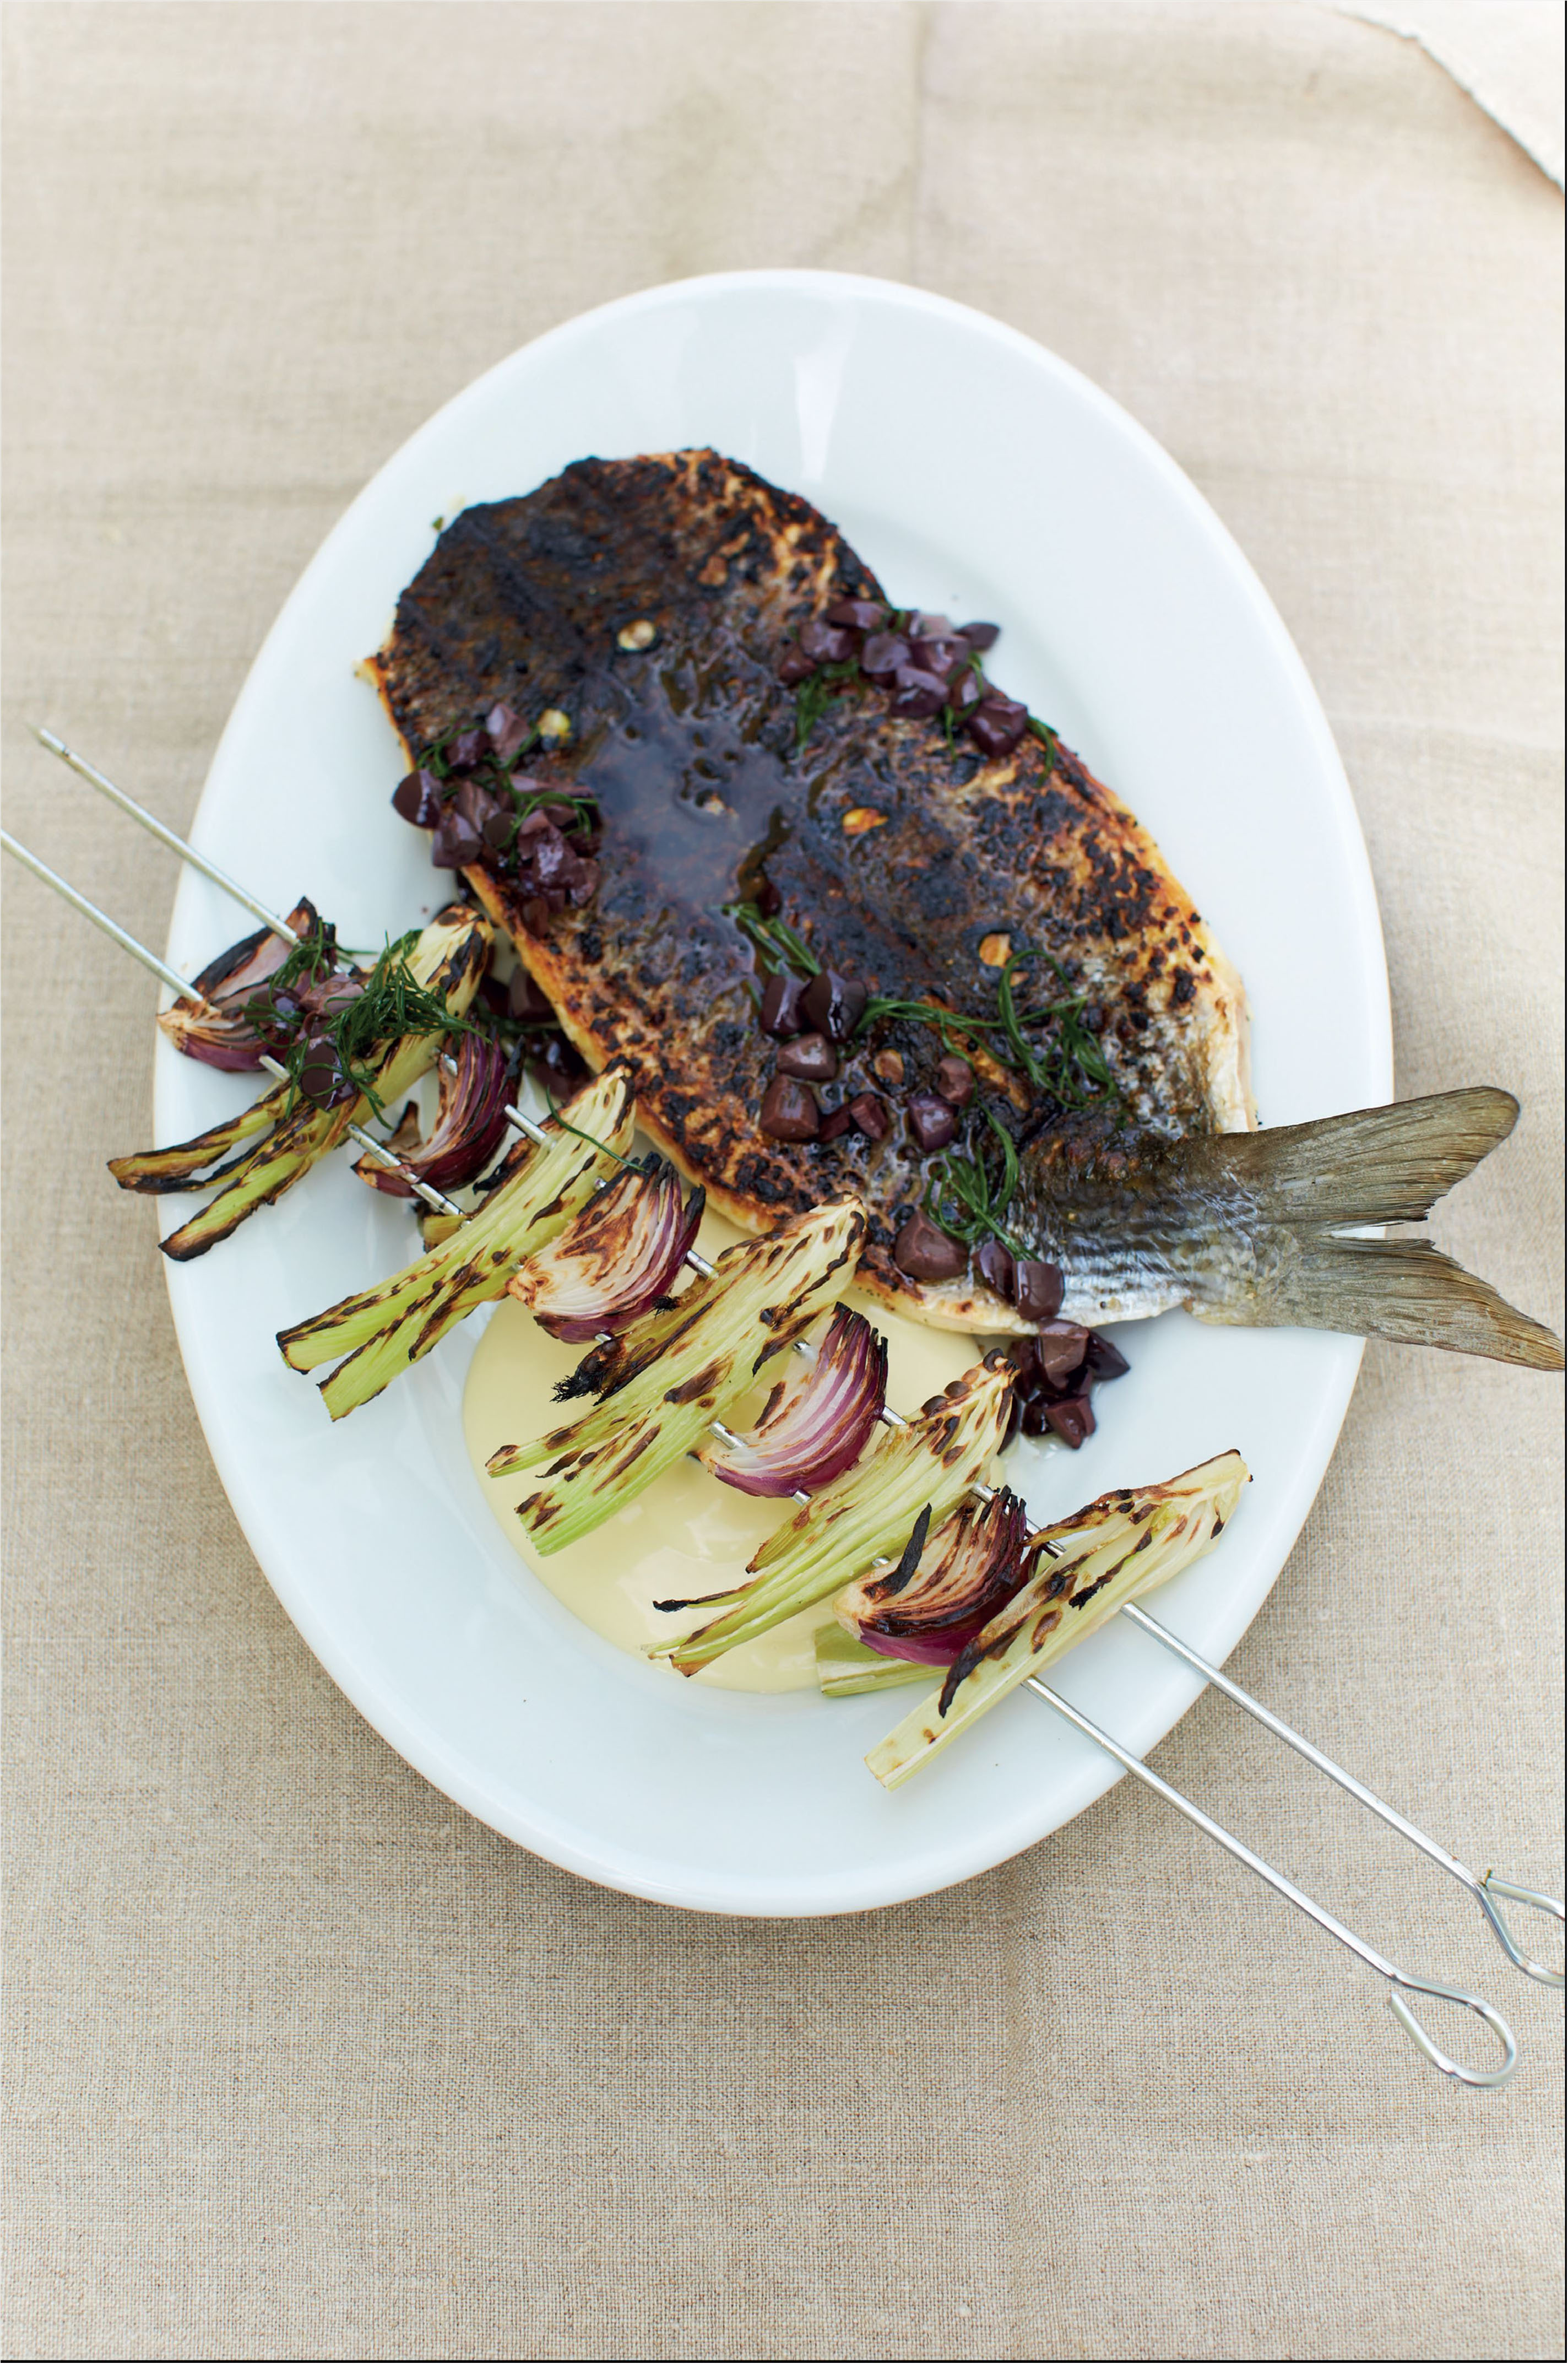 Barbecued grey mullet with garlic, fennel and olives